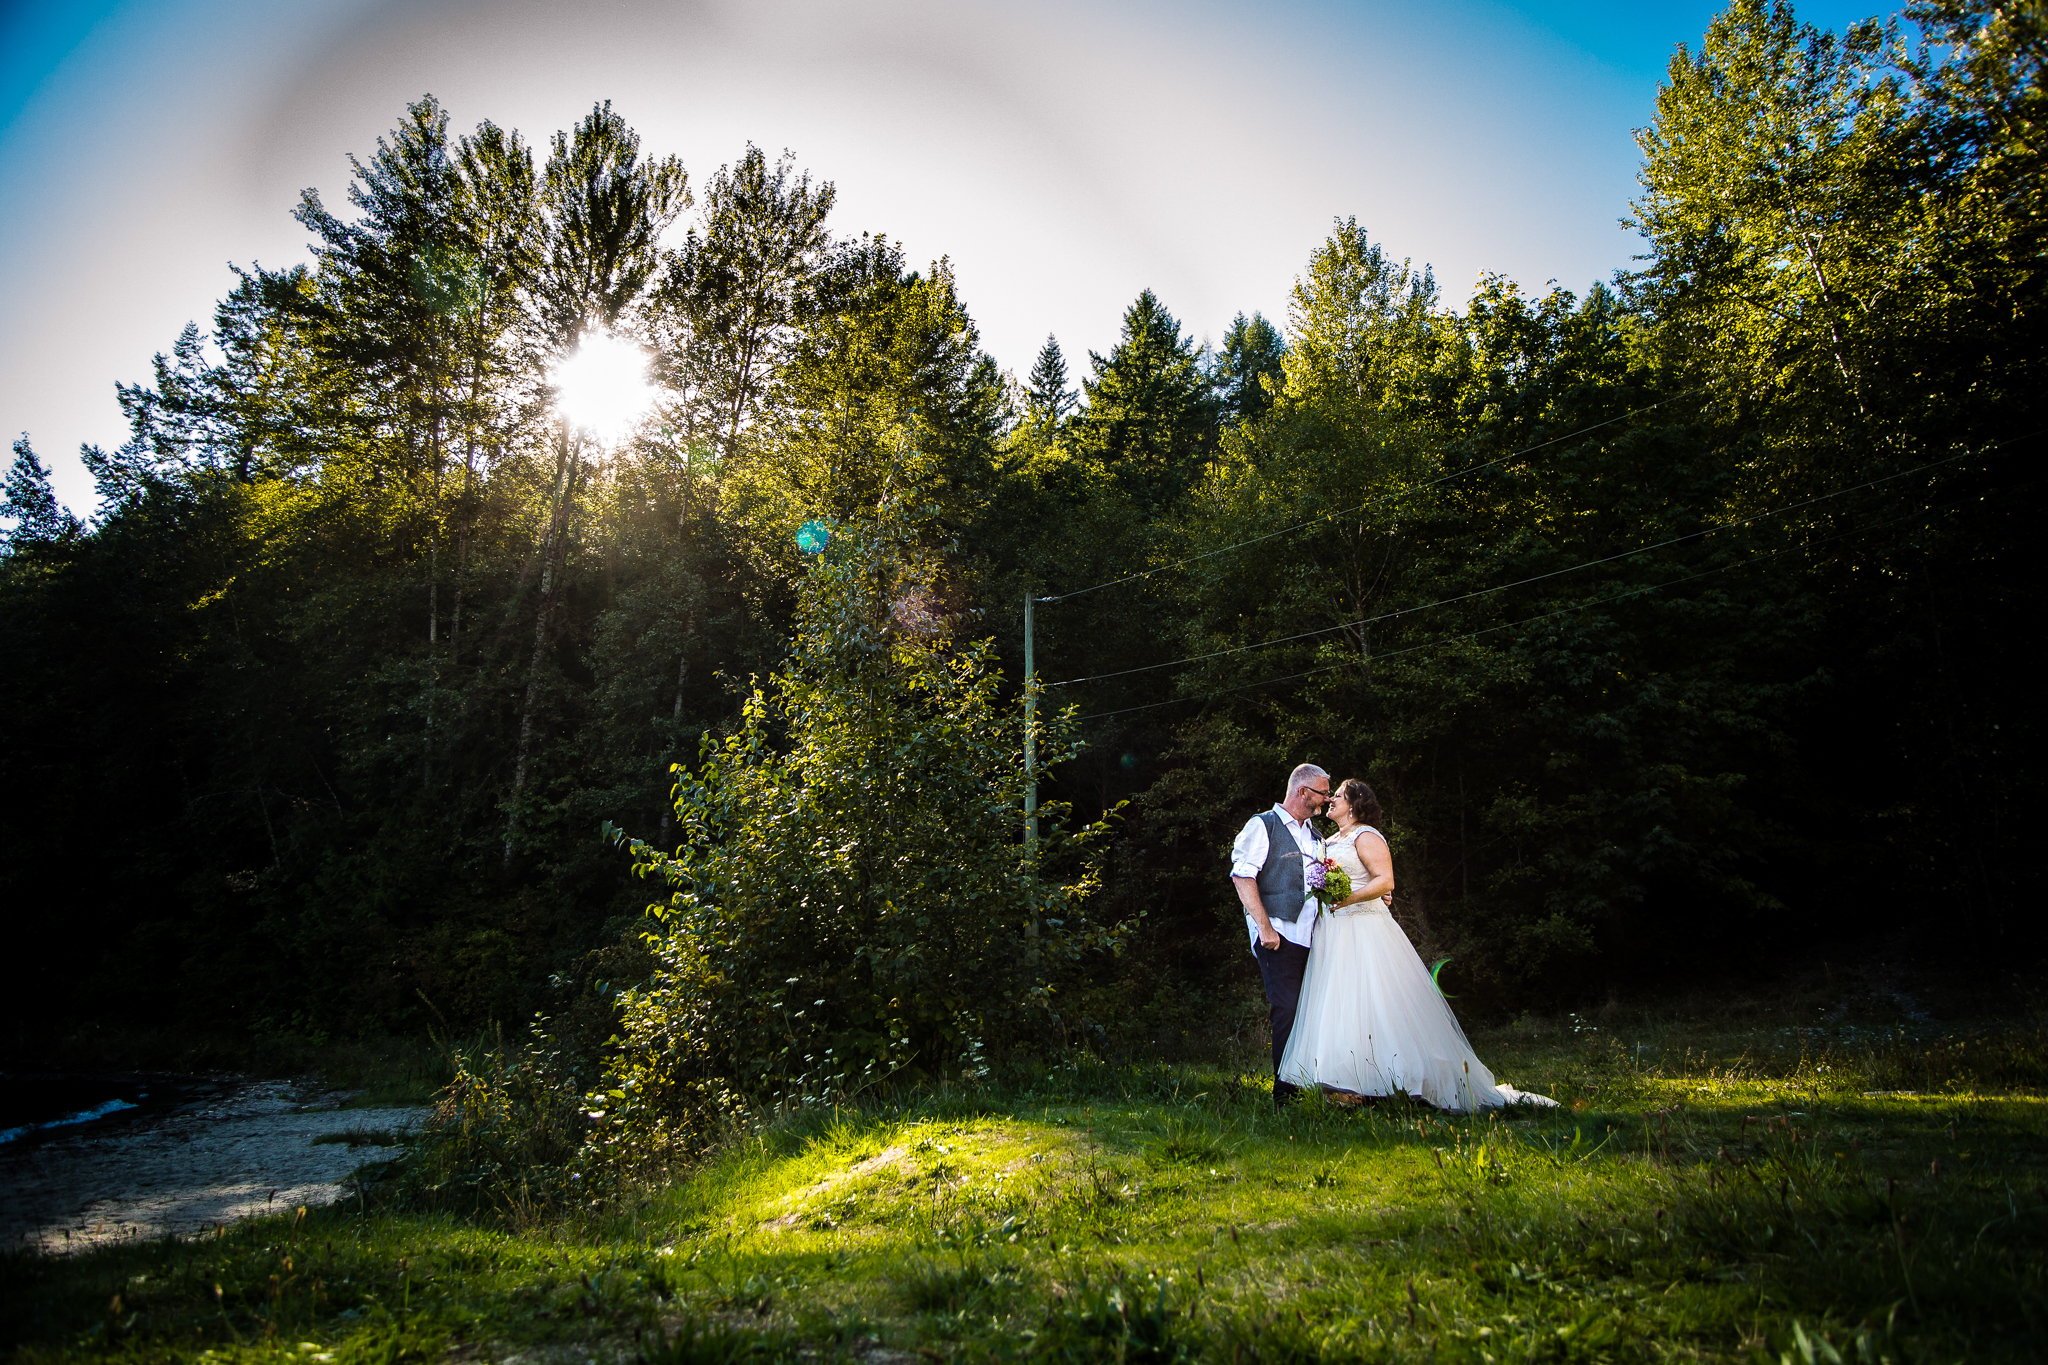 Chilliwack, BC   Abbotsford, BC  Langley, BC  Fraser Valley, BC   Wedding and Event Photographer